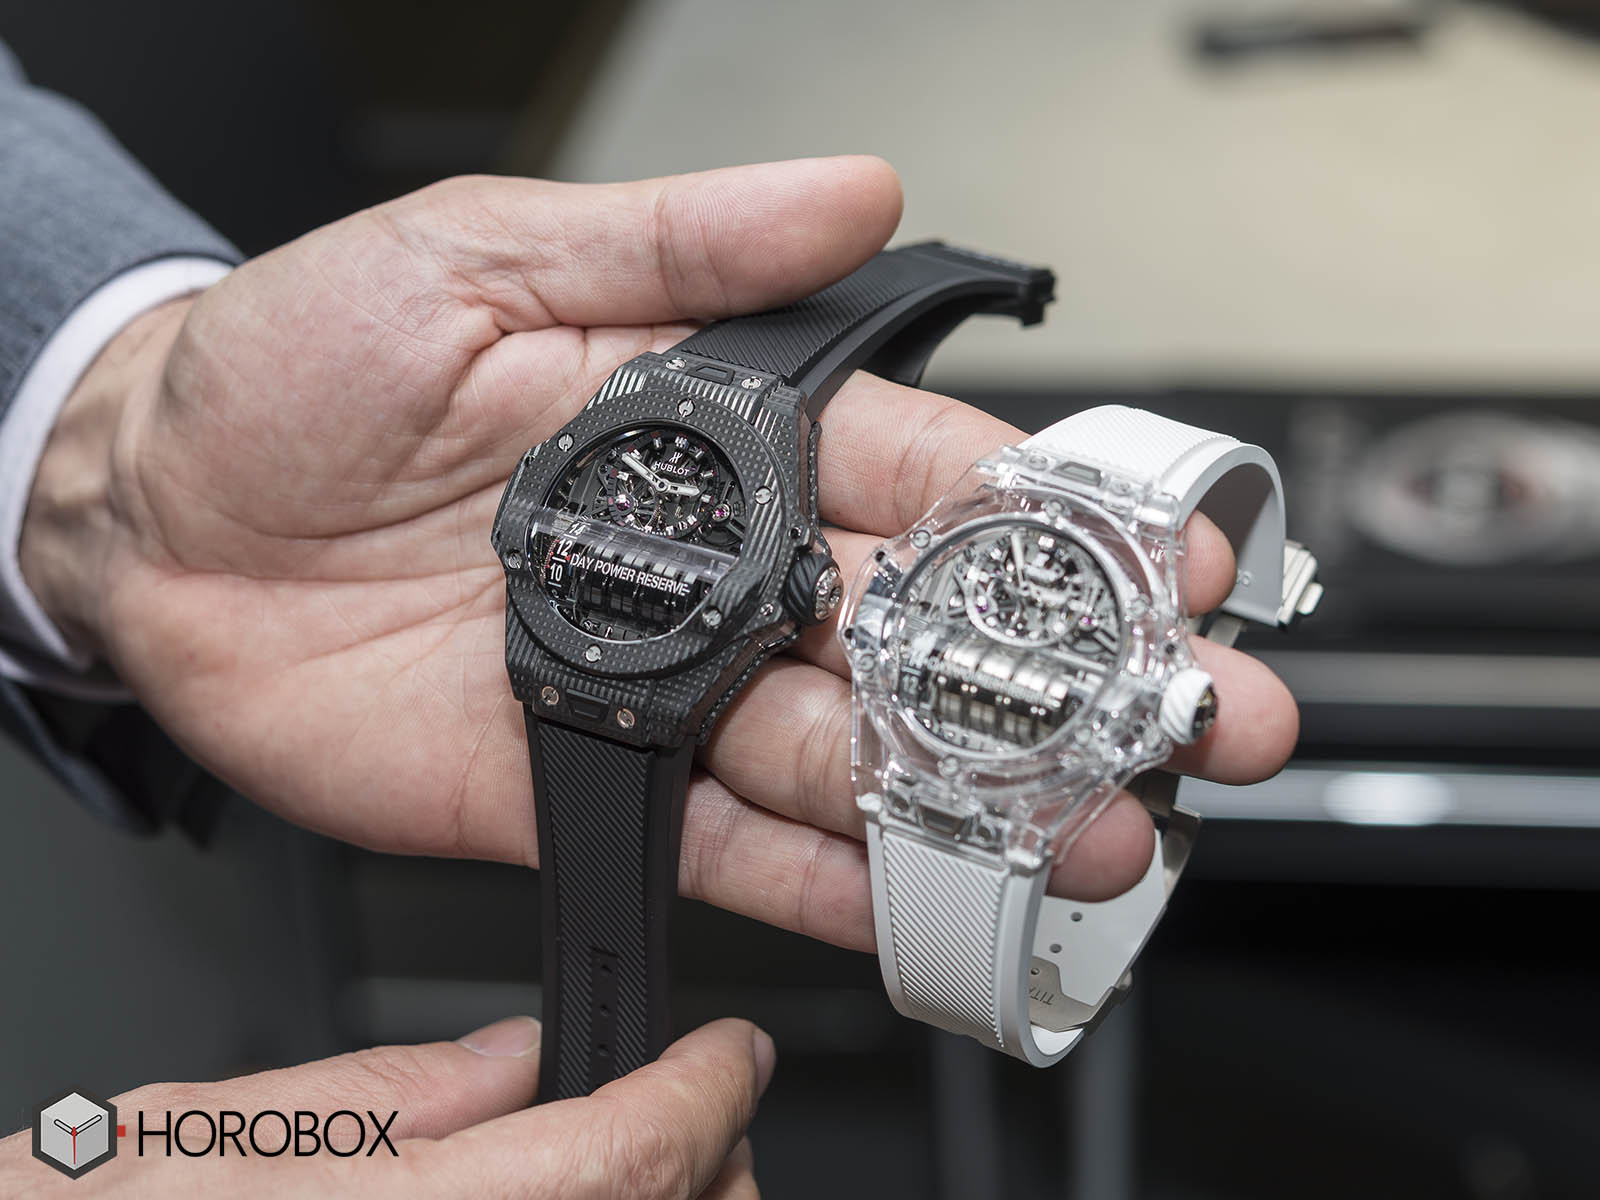 911-qd-0123-rx-911-jx-0102-rw-hublot-mp-11-power-reserve-14-days-14.jpg